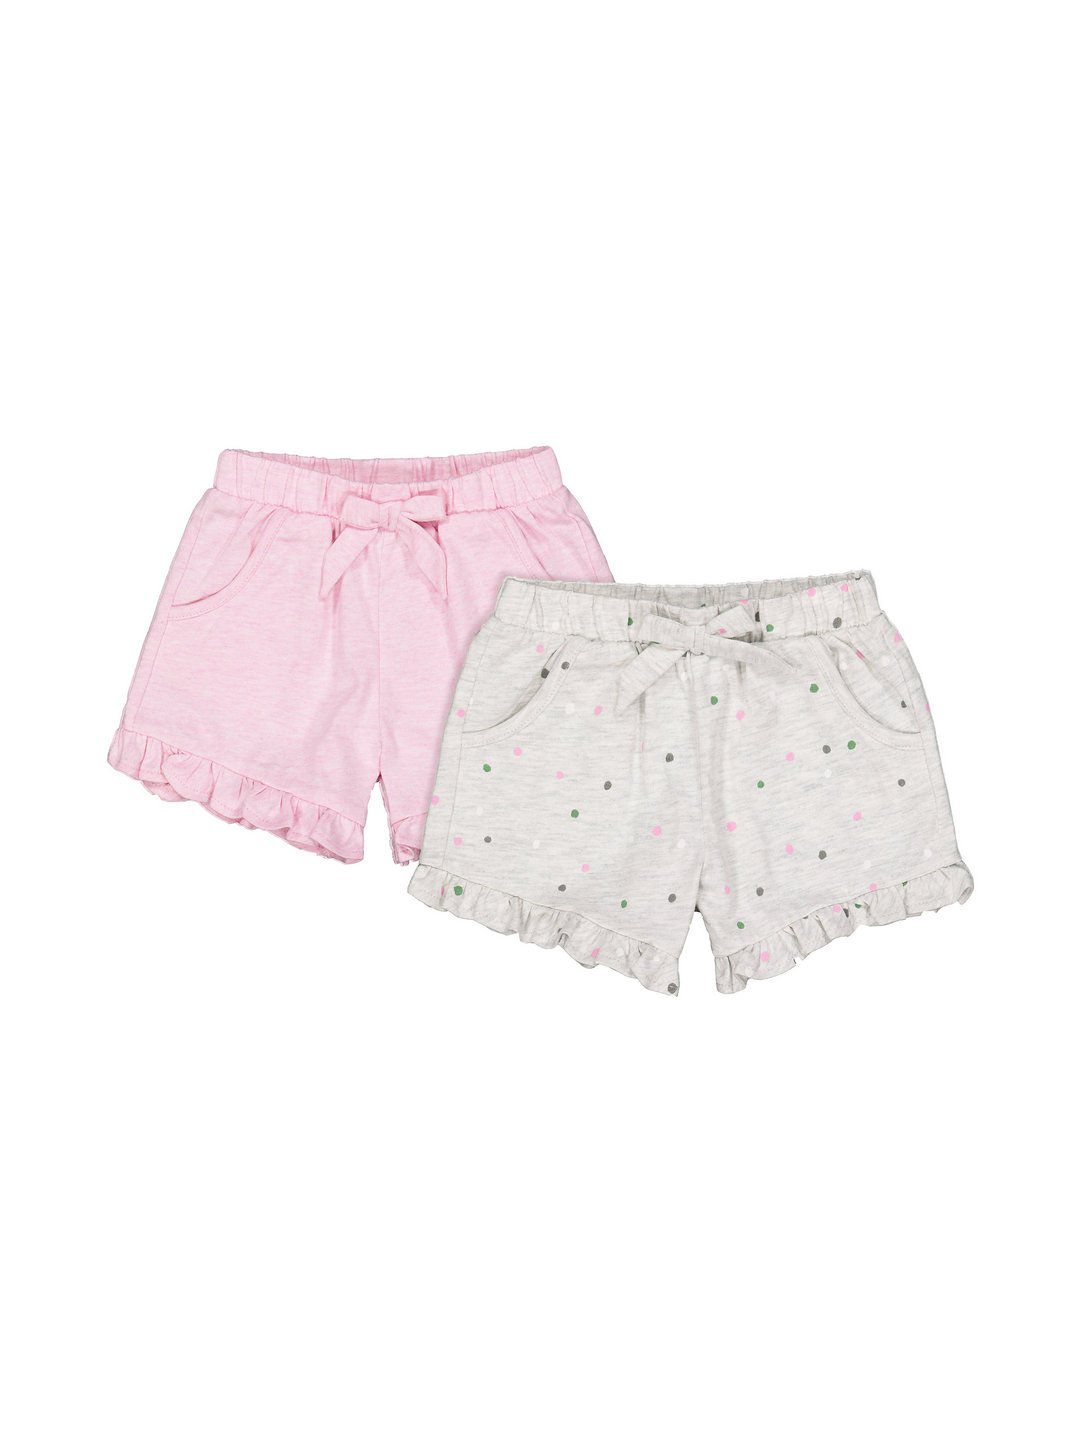 Mothercare | Grey and Pink Printed Shorts - Pack of 2